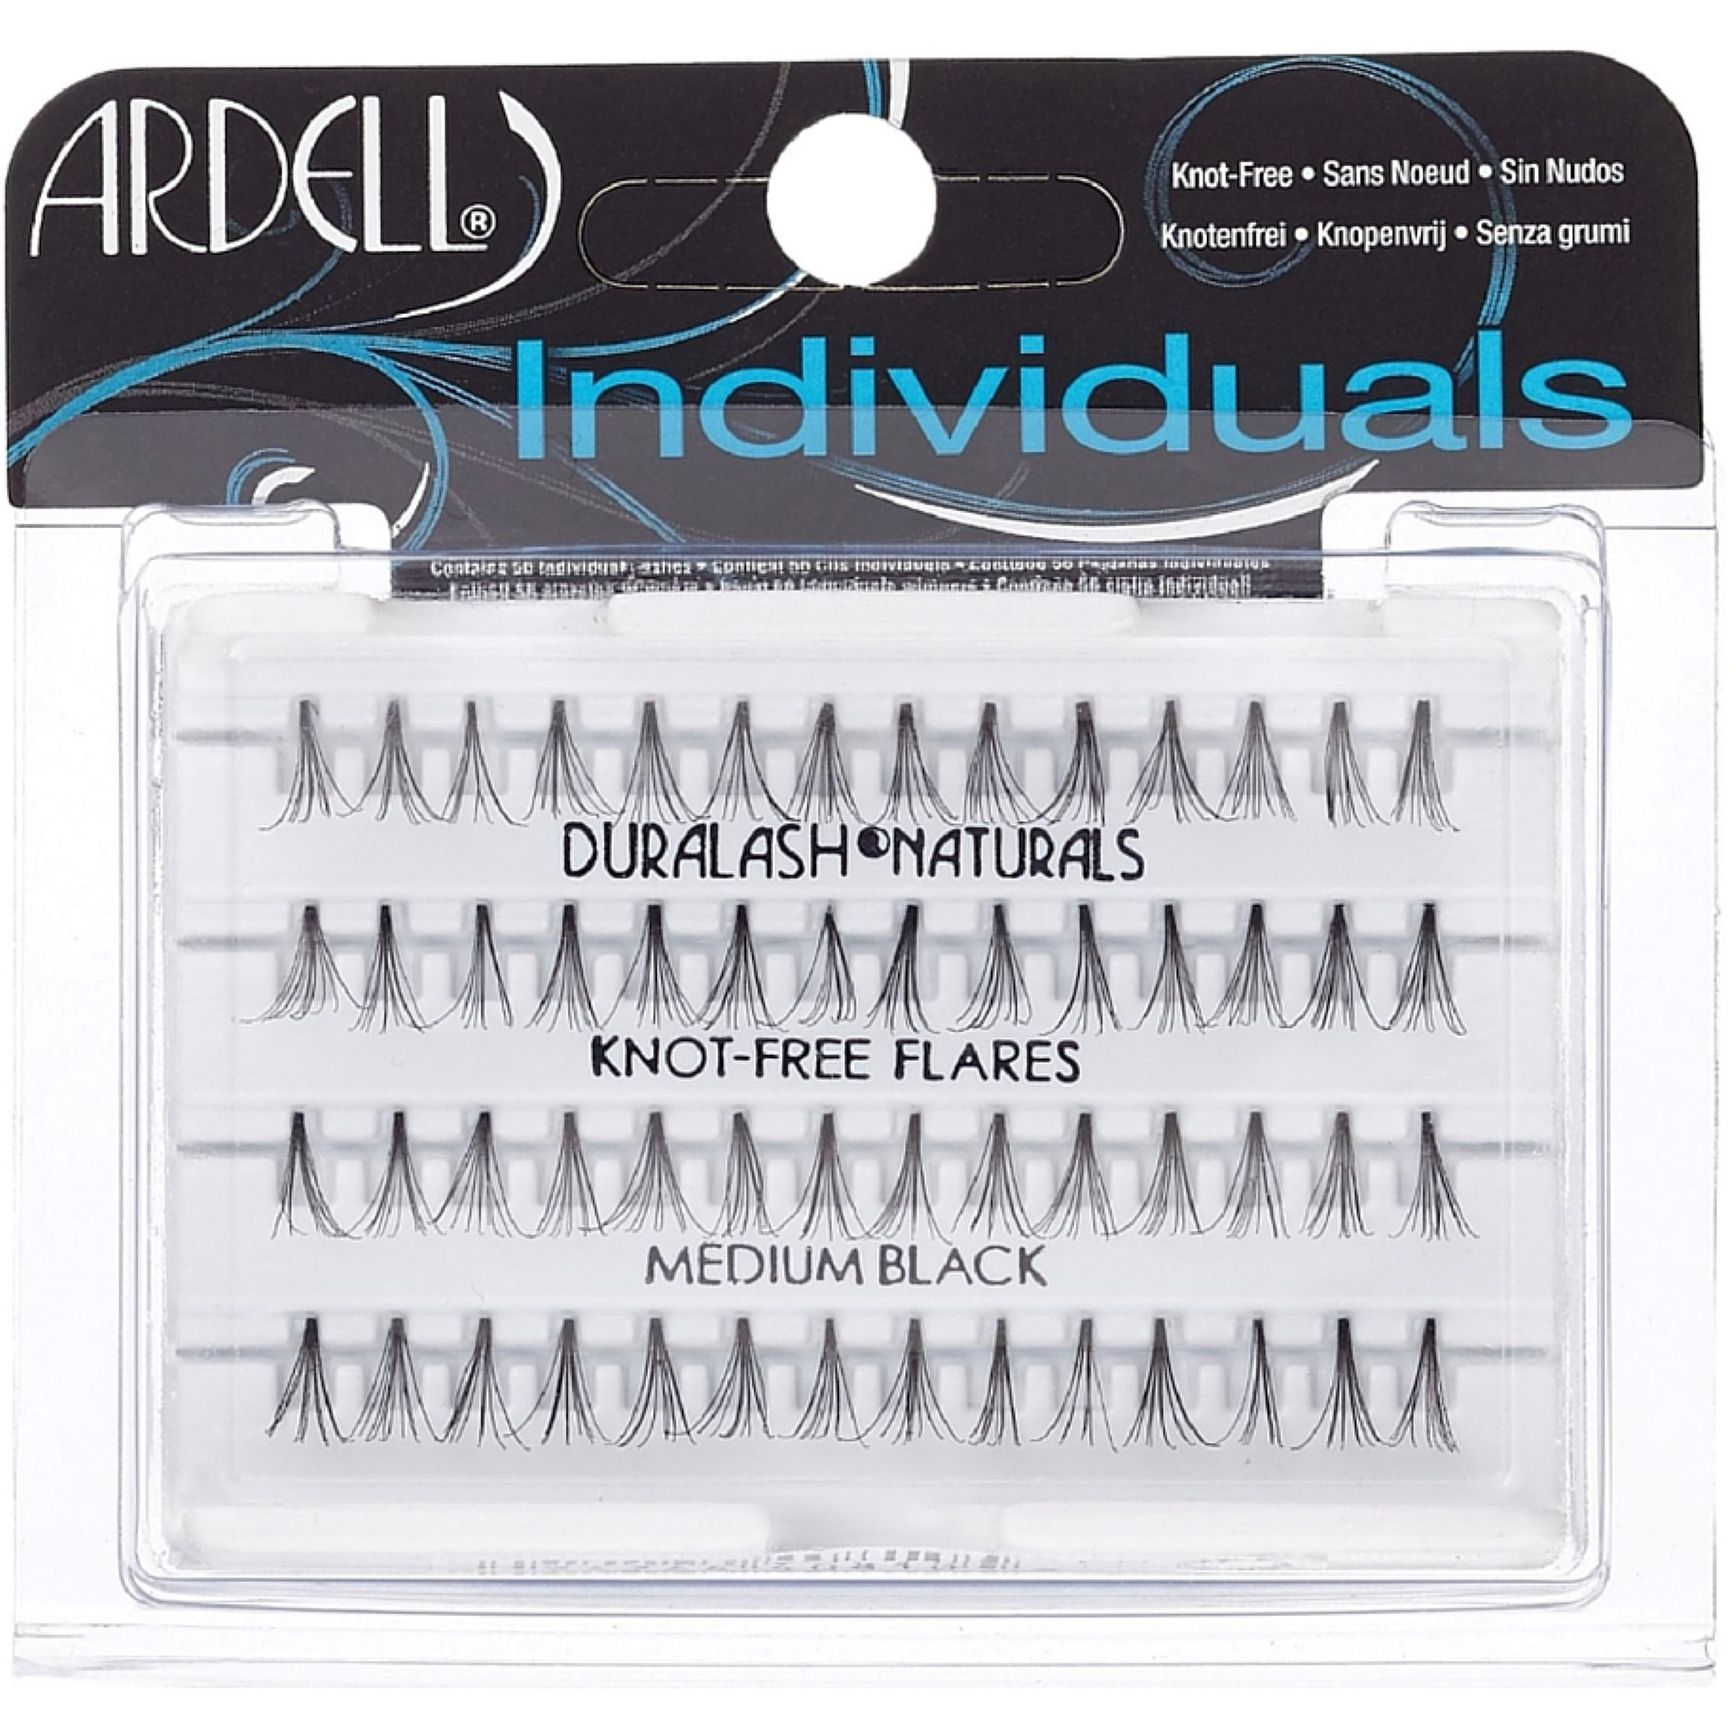 d46cb9cfc17 Ardell DuraLash Individual Medium Flare Lashes, 56 ea | Products ...